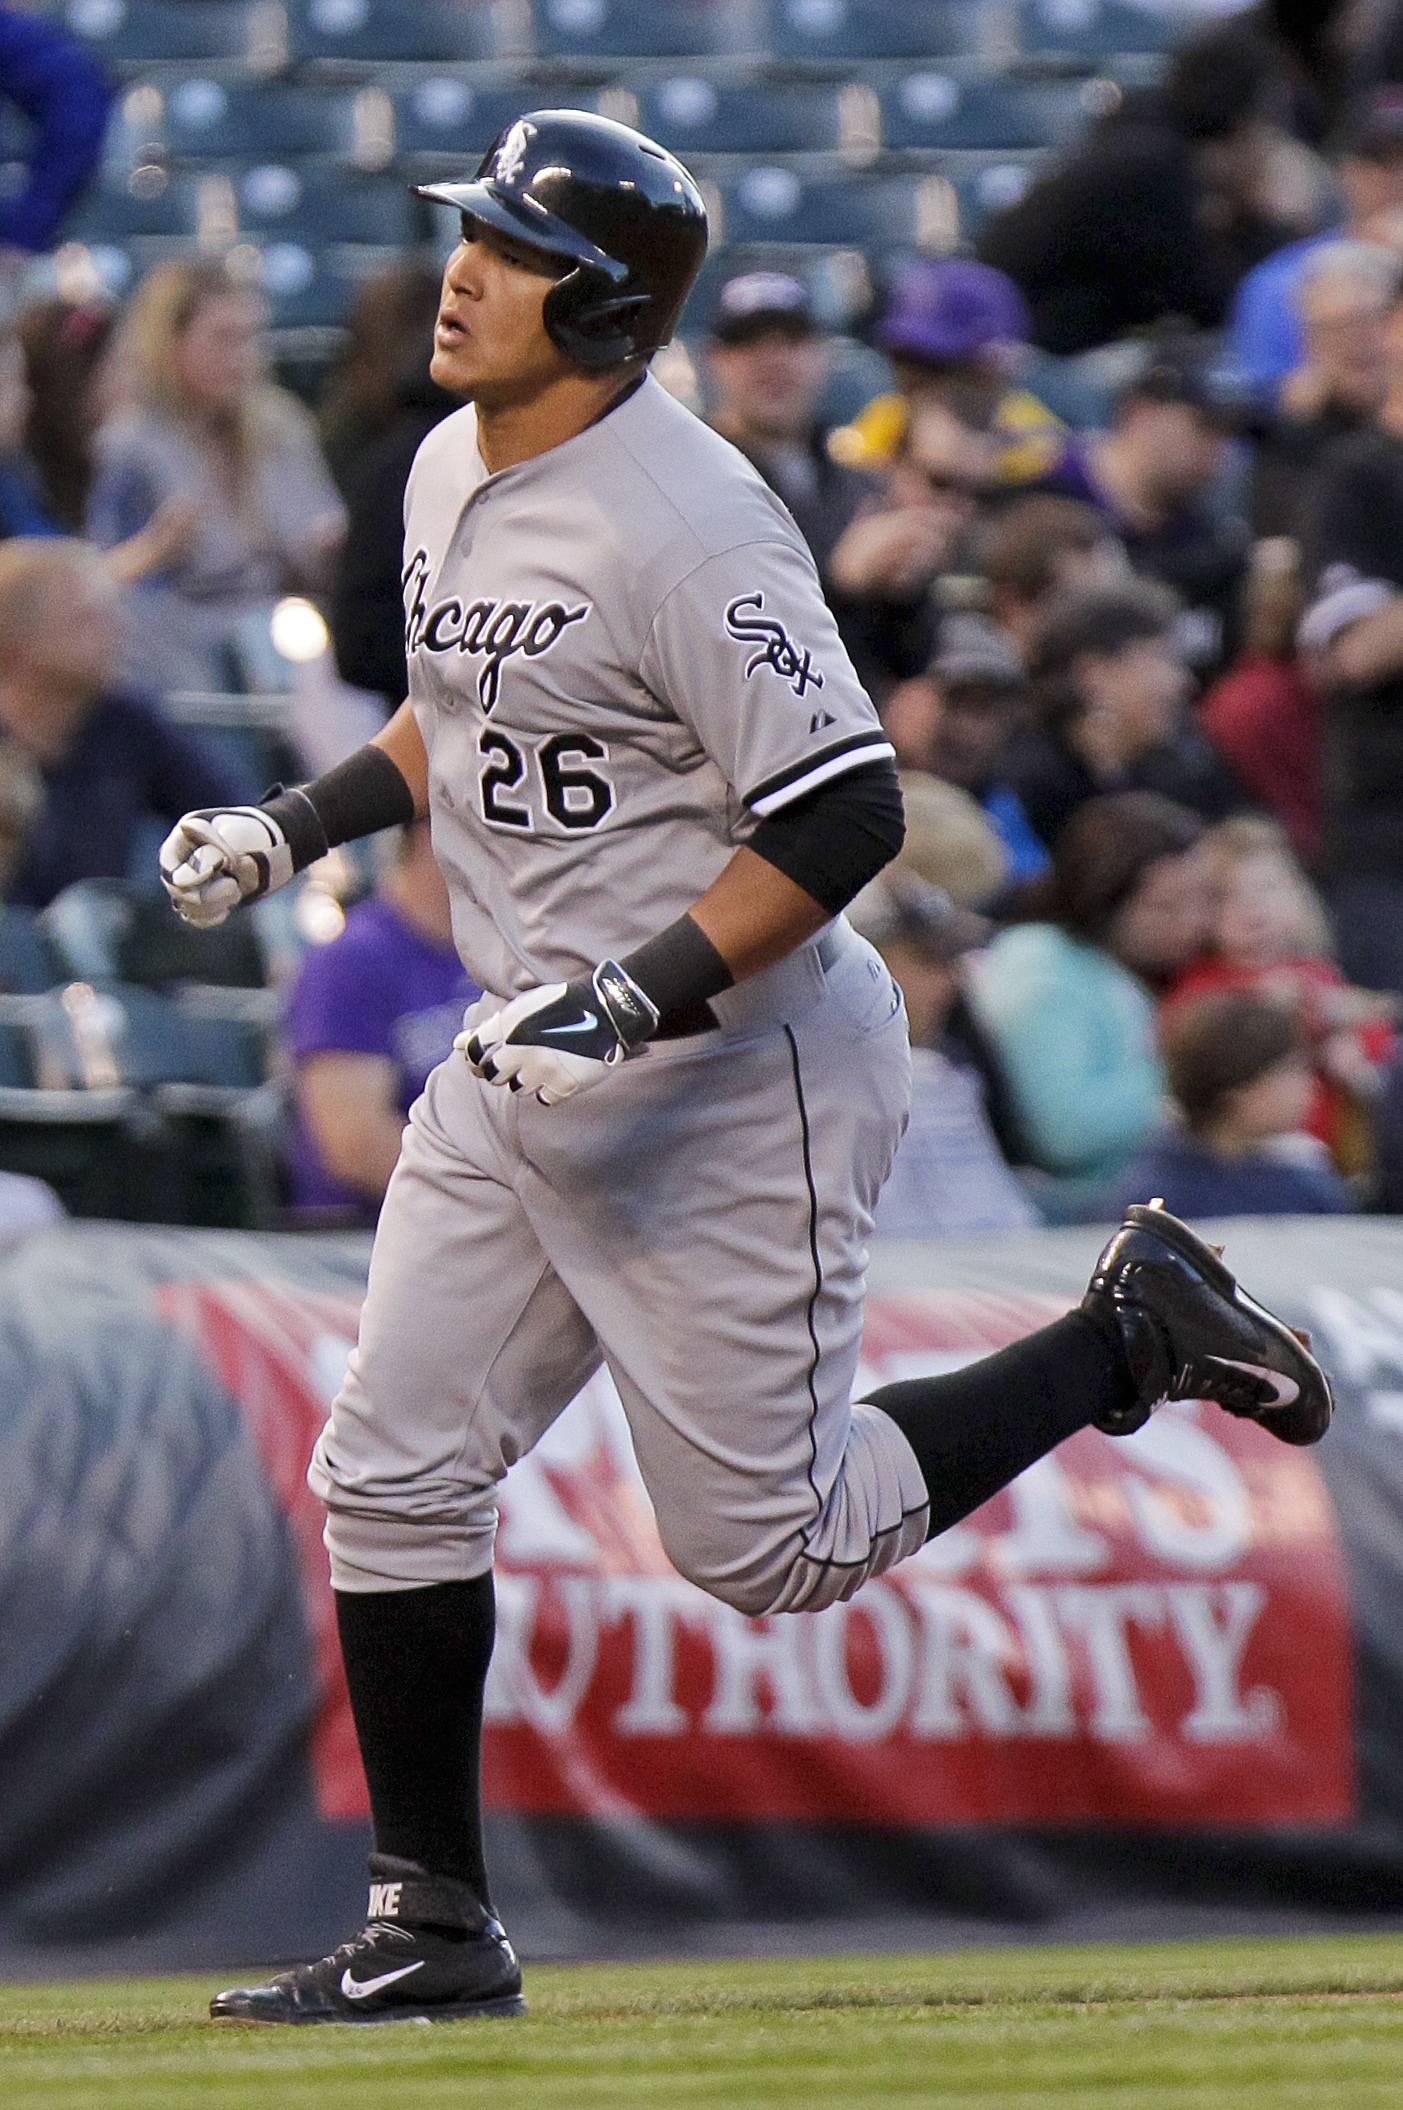 Avisail Garcia (26), who hit two home runs on Tuesday, is out of the season after injuring himself on Wednesday trying to make a diving catch. Garcia will have surgery on his left shoulder to repair a torn labrum.